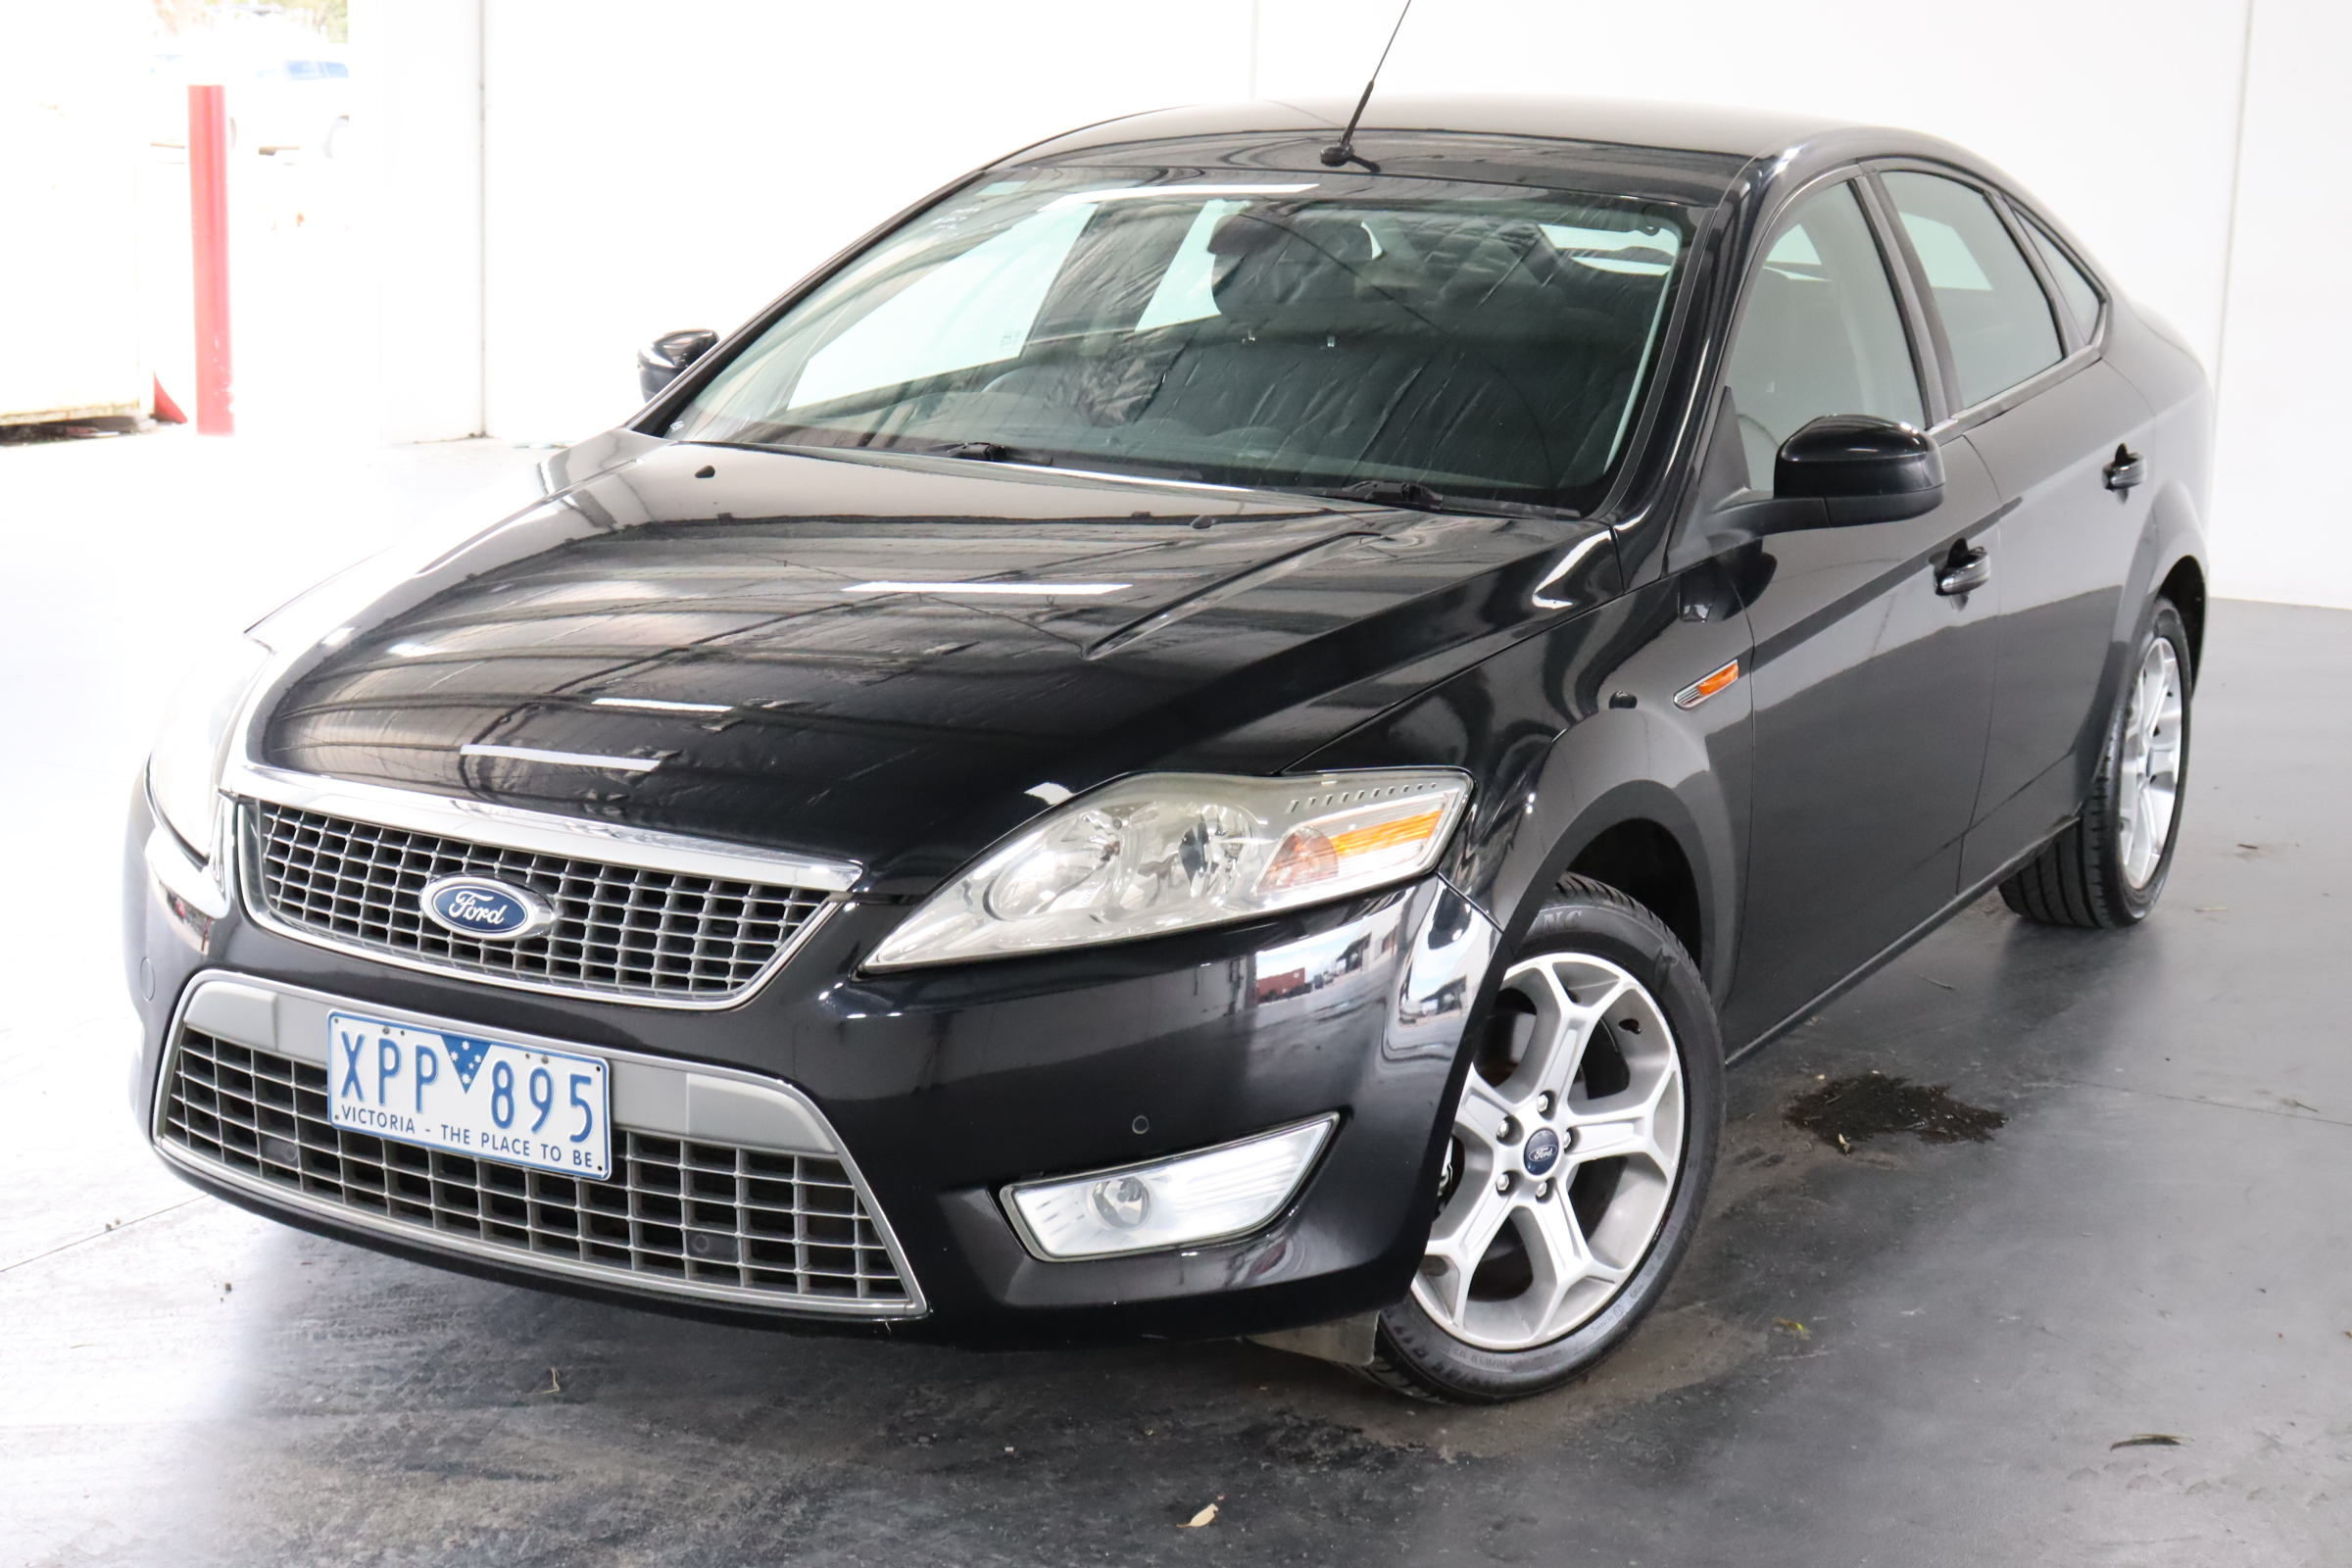 2008 Ford Mondeo Zetec MA Automatic Hatchback